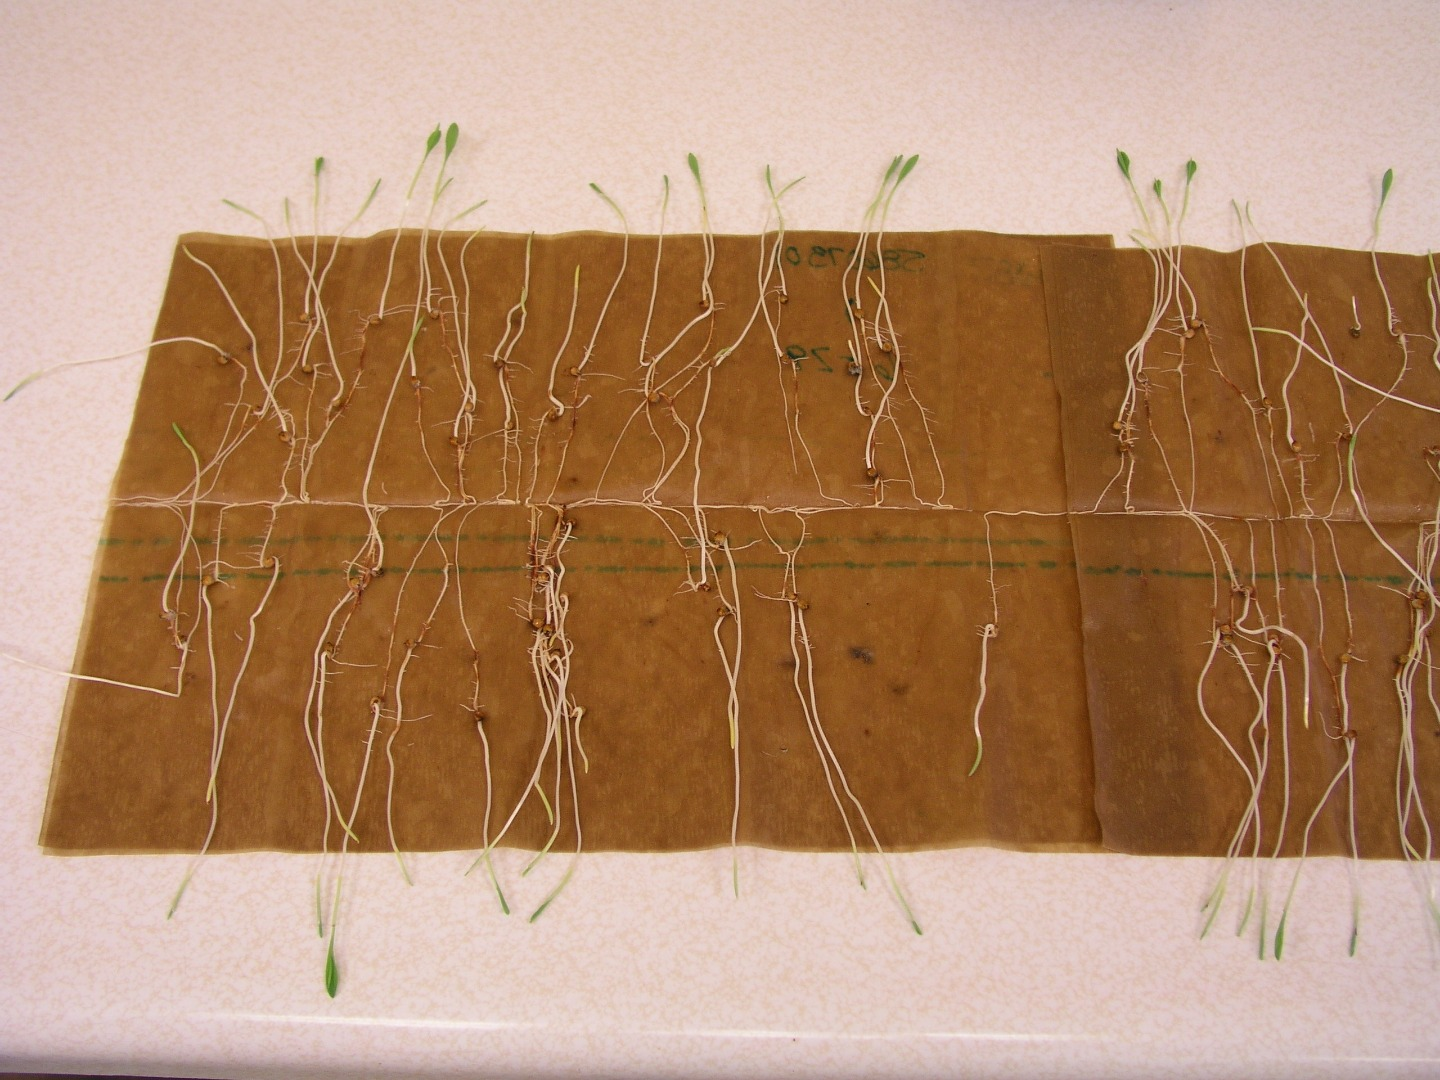 Sorghum seedlings ready for counting during germination protocol